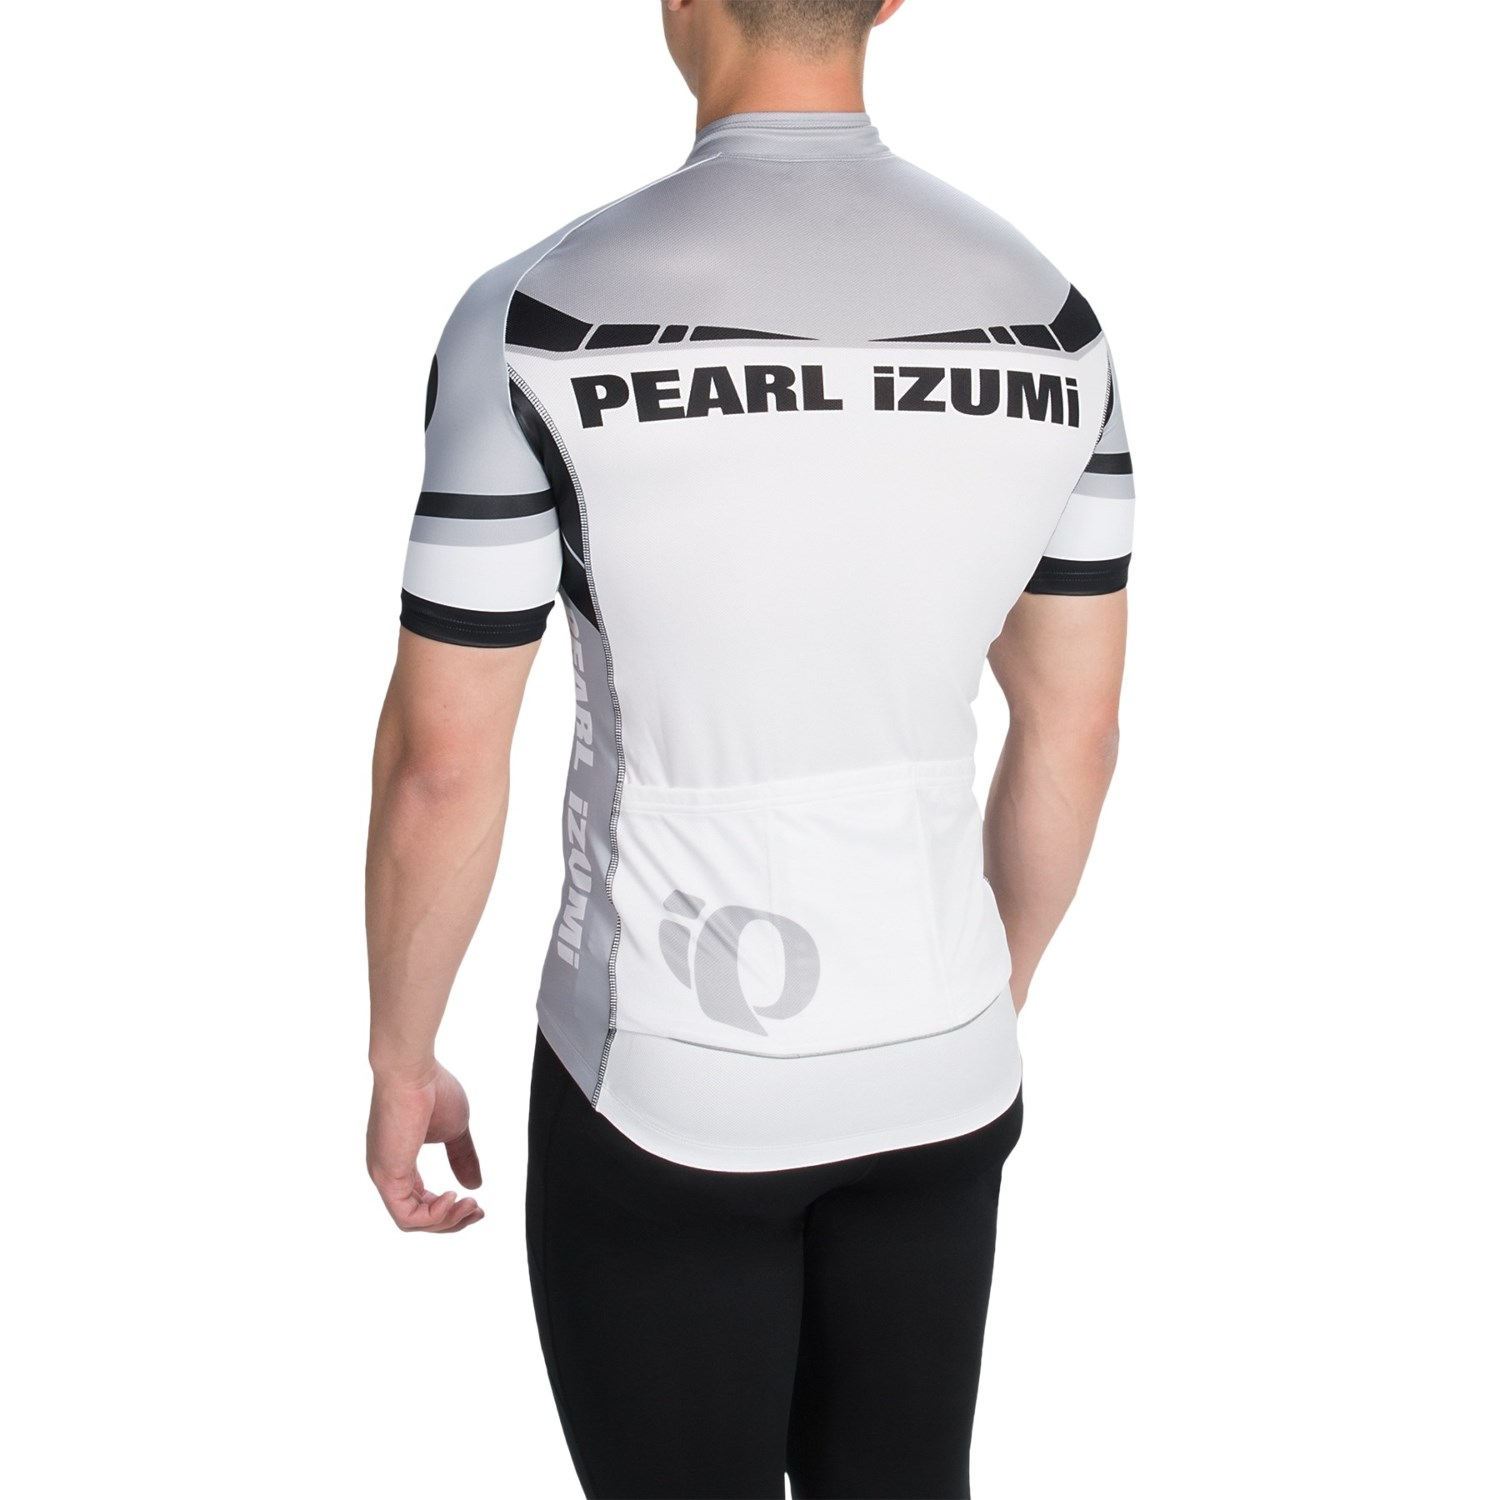 Pearl izumi p r o in r cool cycling jersey for men for Pearl izumi cycling shirt